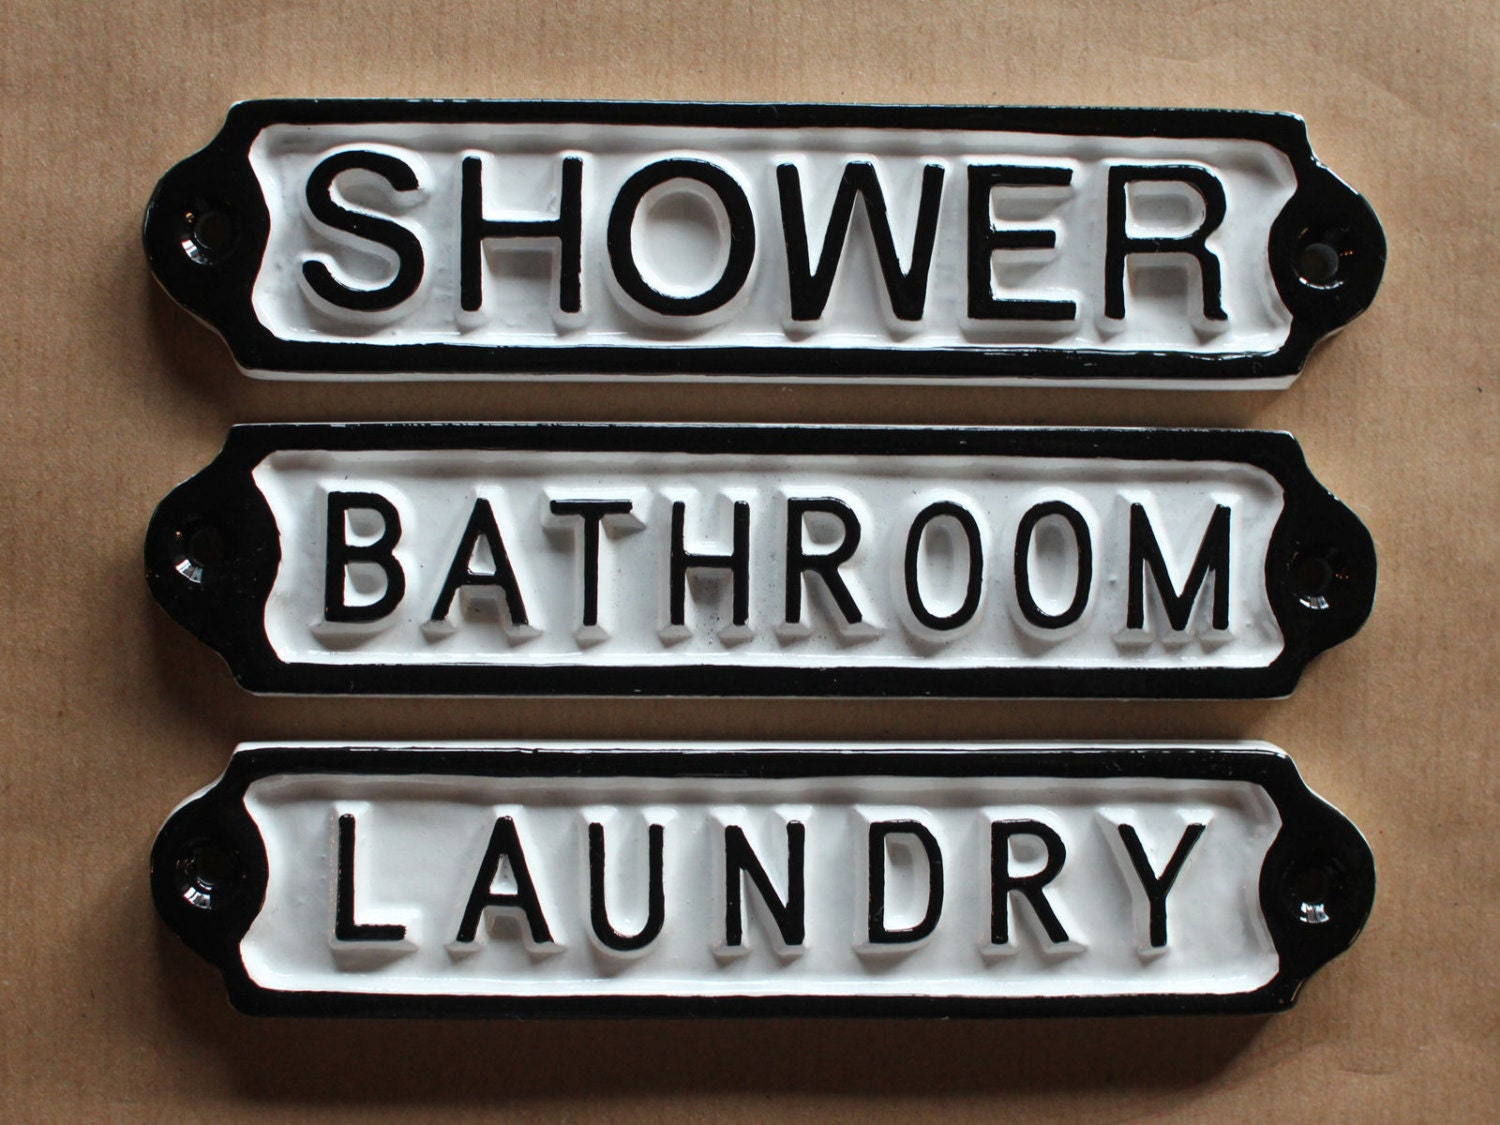 🔎zoom & Antique Bathroom Shower Laundry Door Signs Shabby Chic